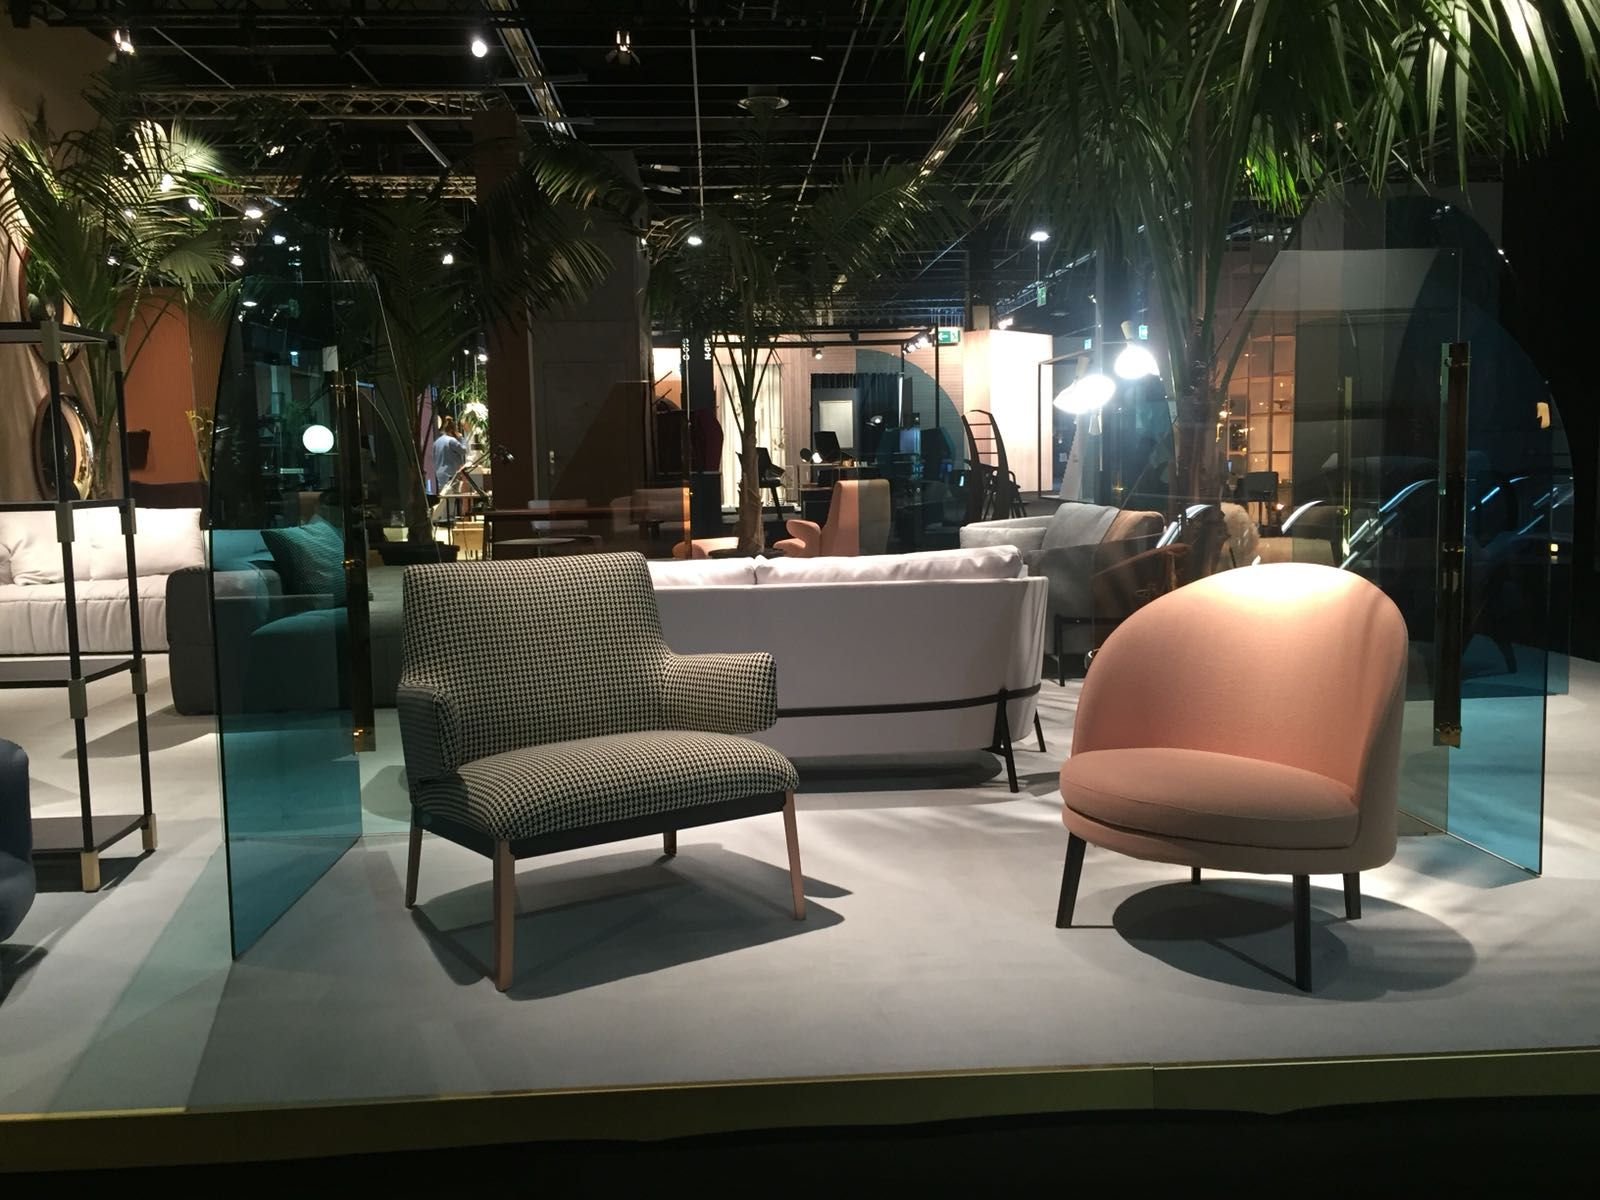 Welcome to @immcologne 2018 Halle 2.2 Stand N 010 #arflex ...